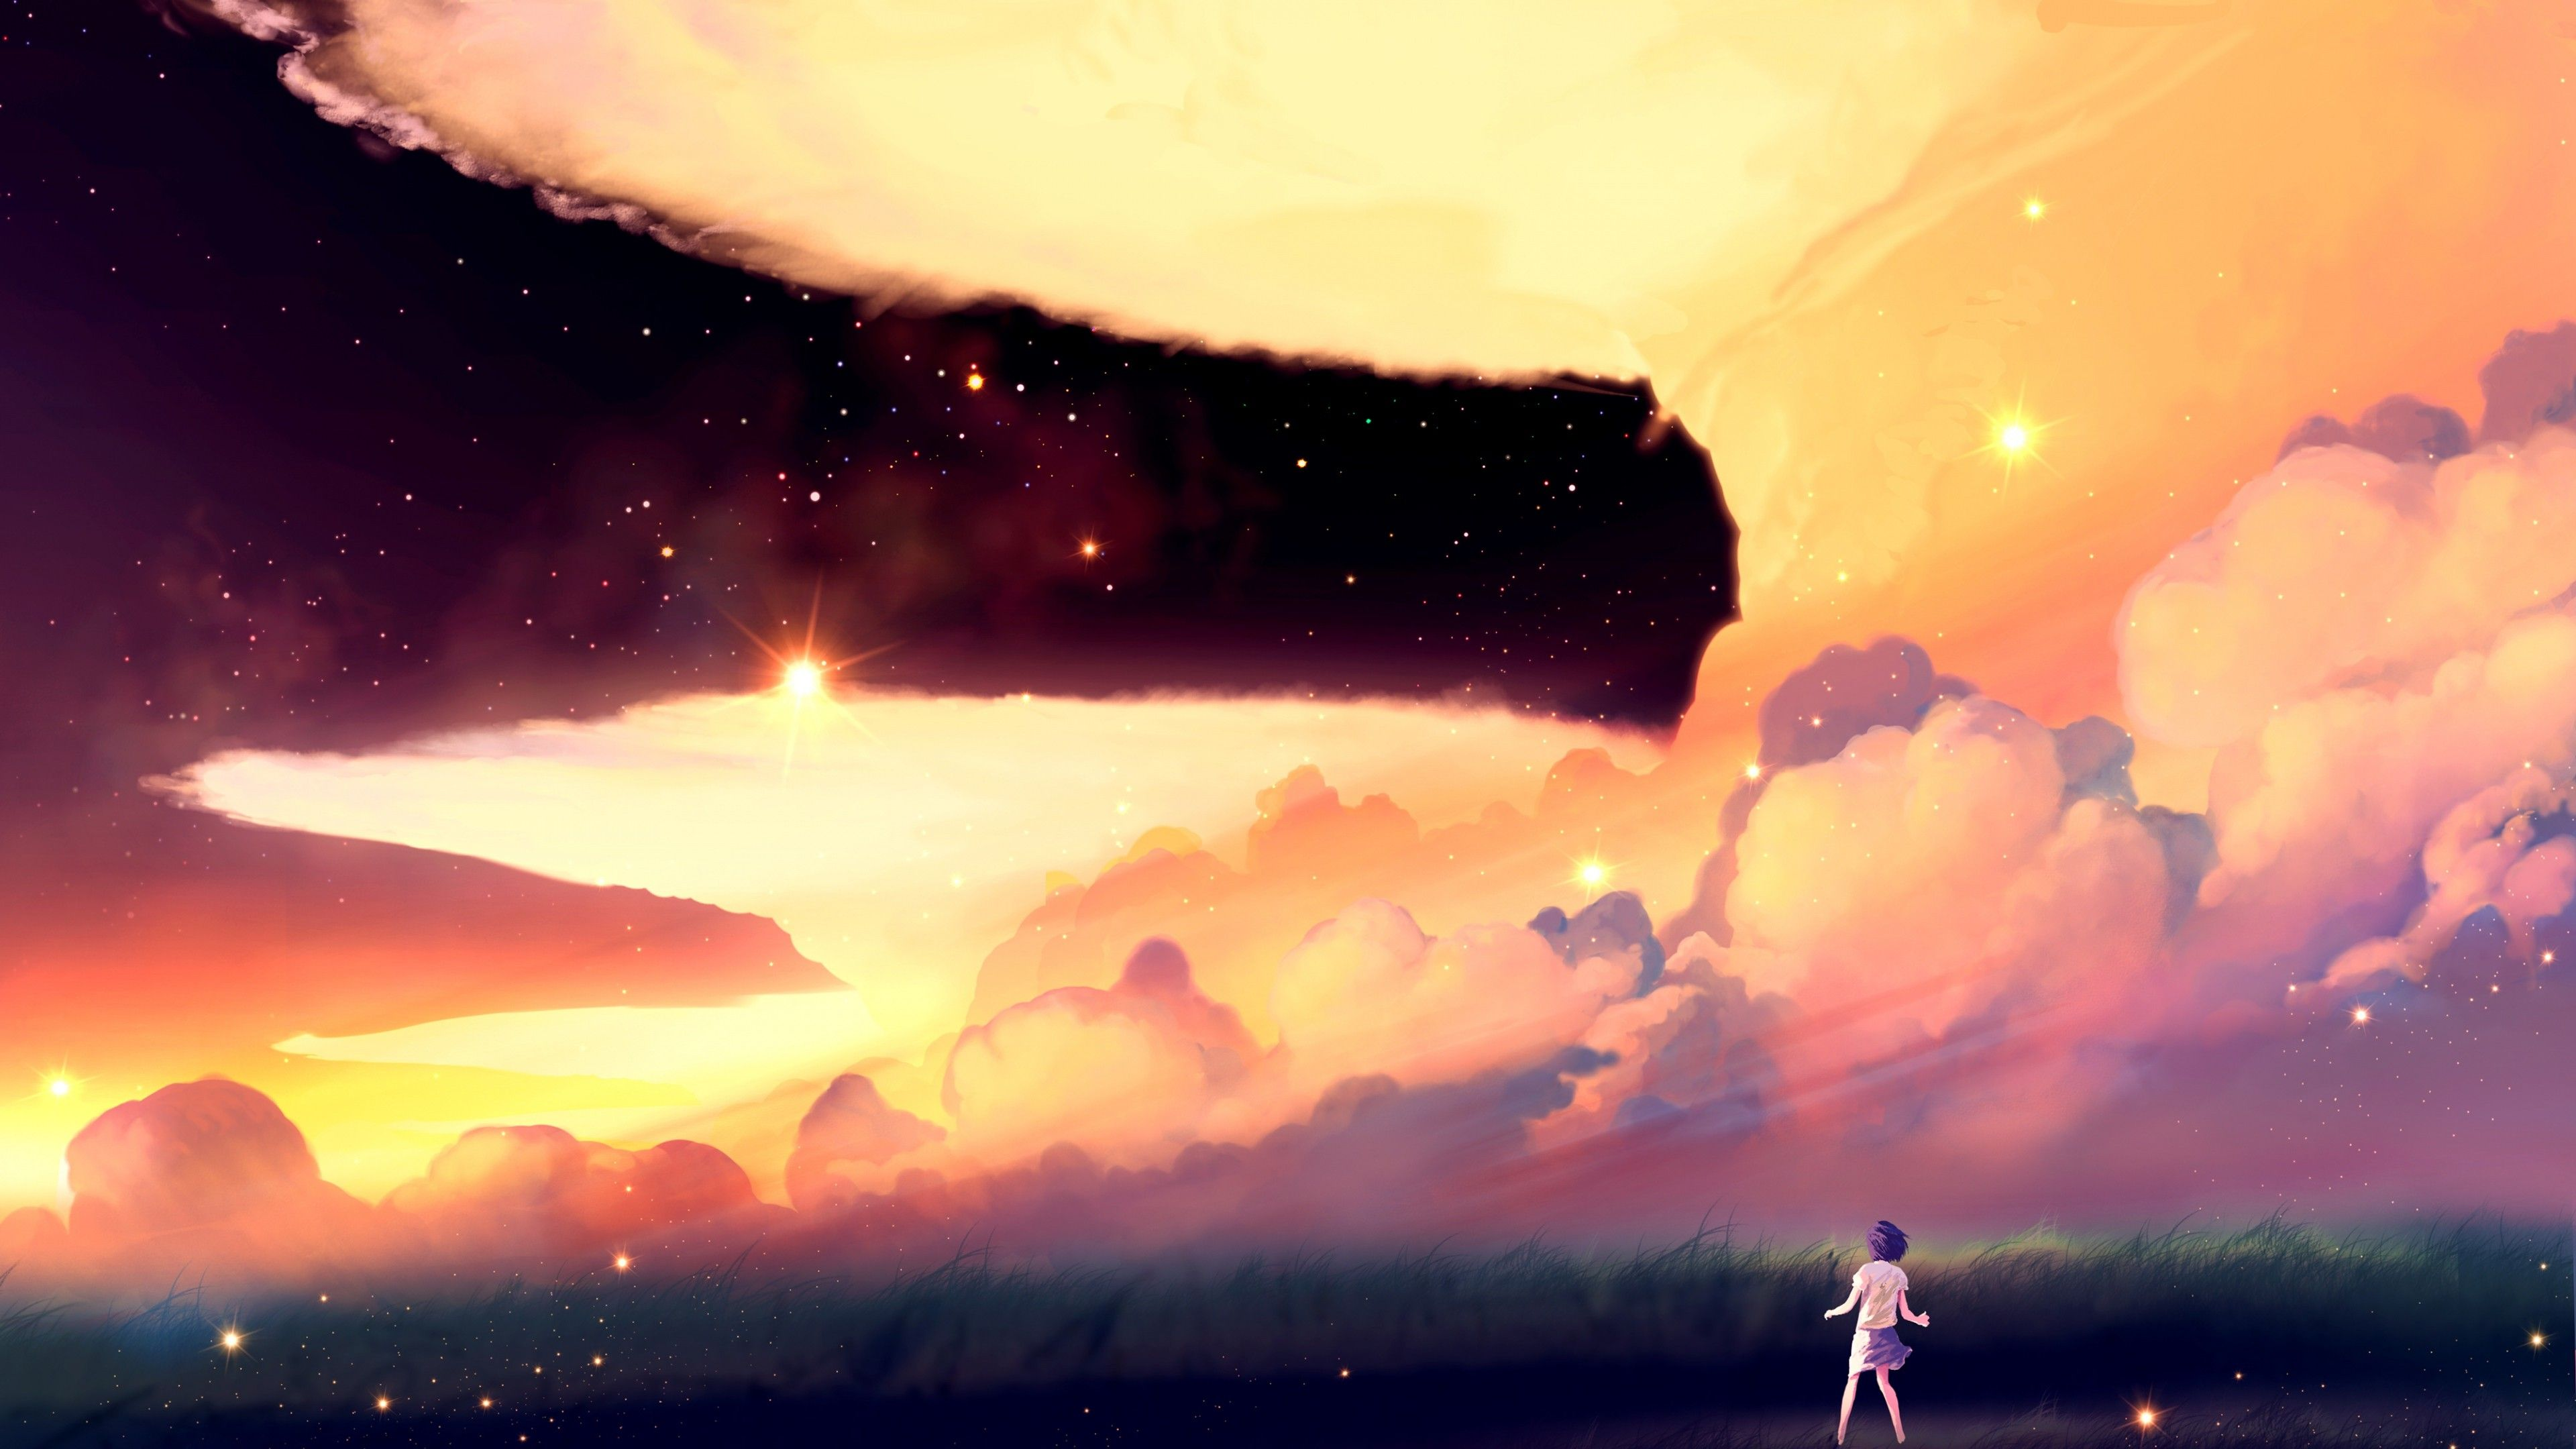 Anime 3840x2160 artwork clouds field sky stars anime